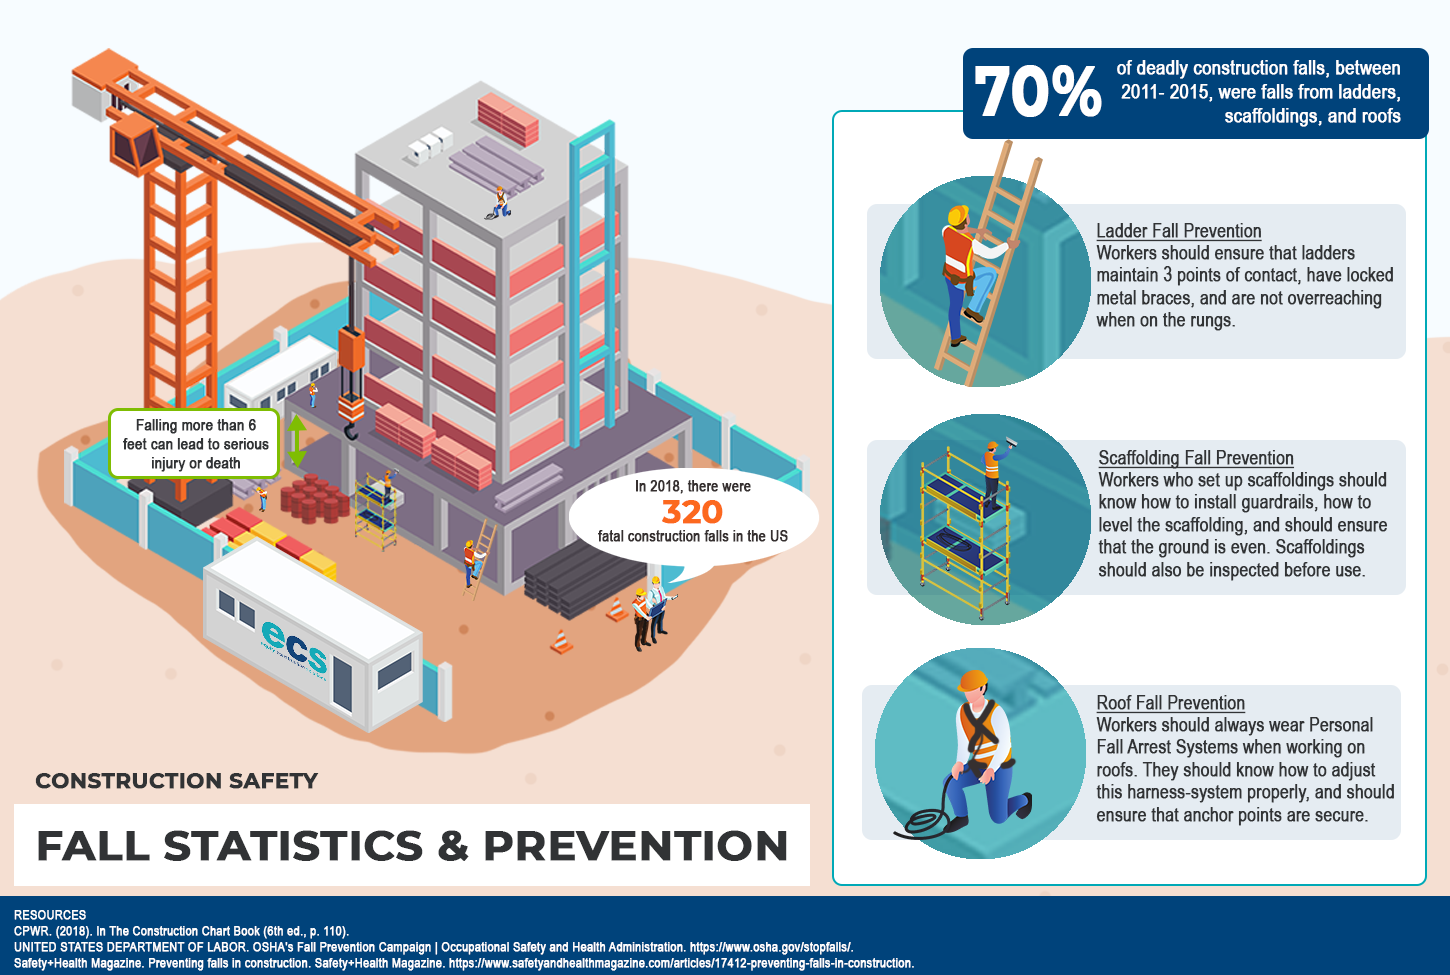 Infographic that includes construction safety statistics and provides fall prevention tips for ladders, scaffoldings, and roof work.